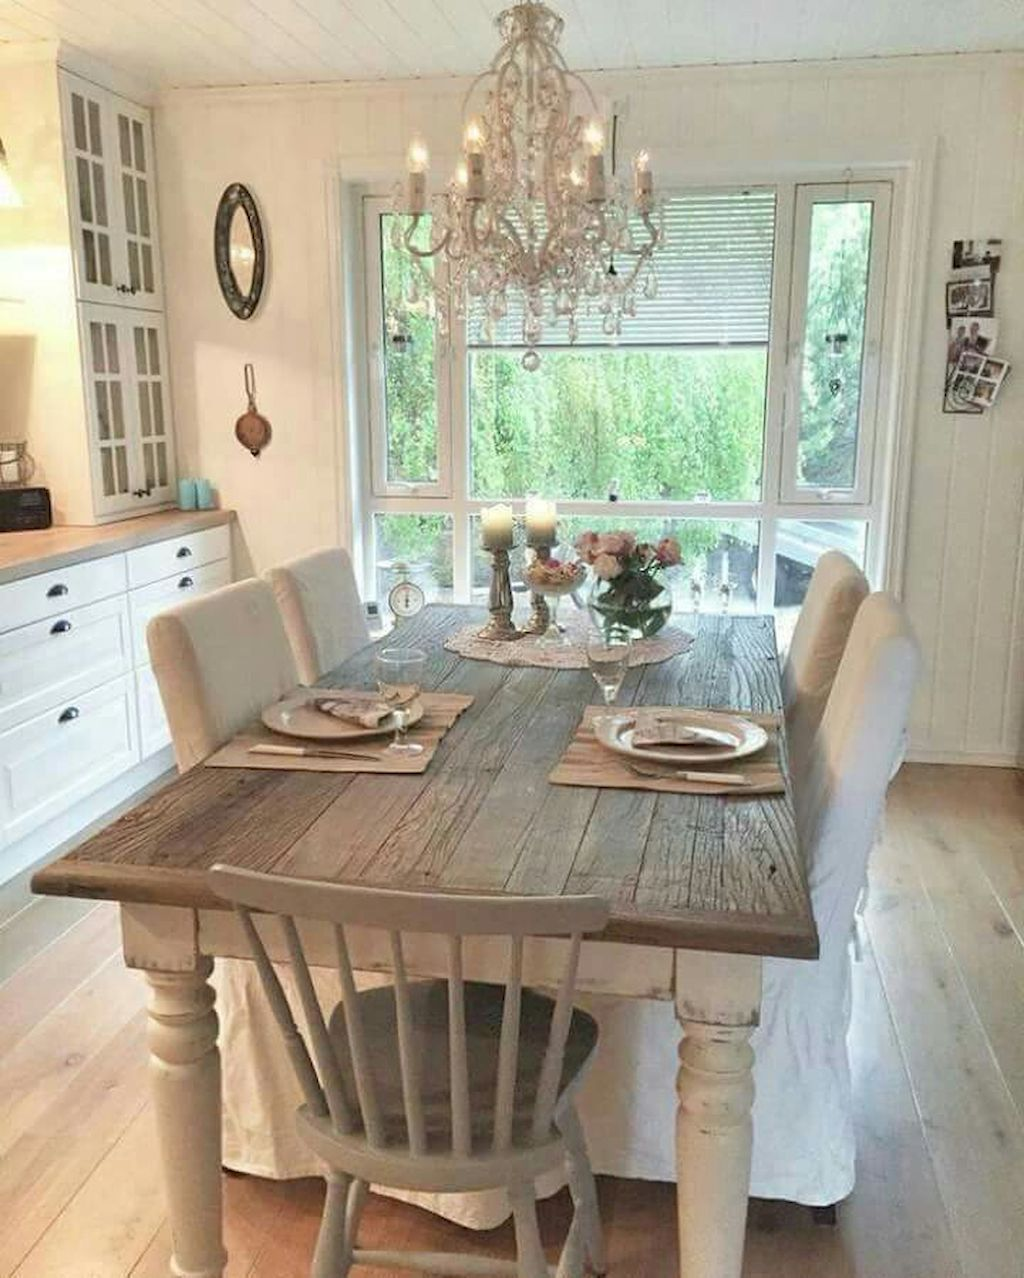 French Country Dining Room Table and Decor Ideas 50 French